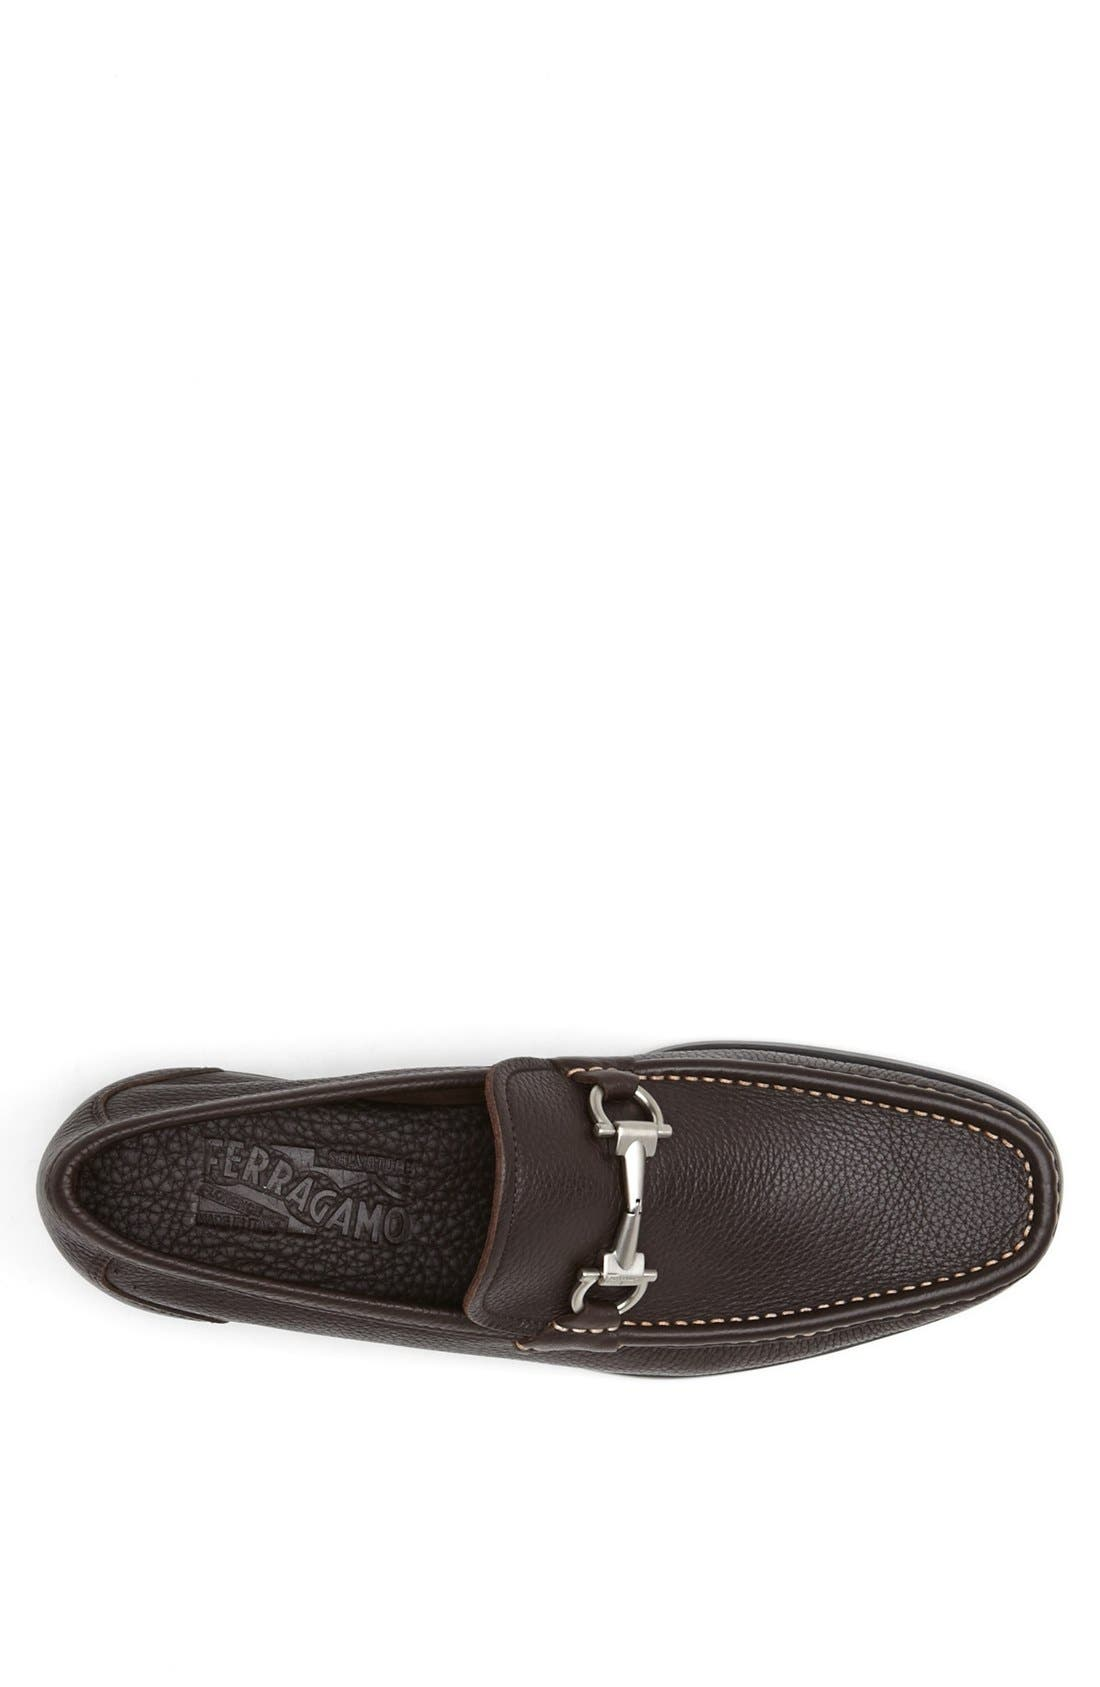 Alternate Image 3  - Salvatore Ferragamo 'Magnifico' Loafer